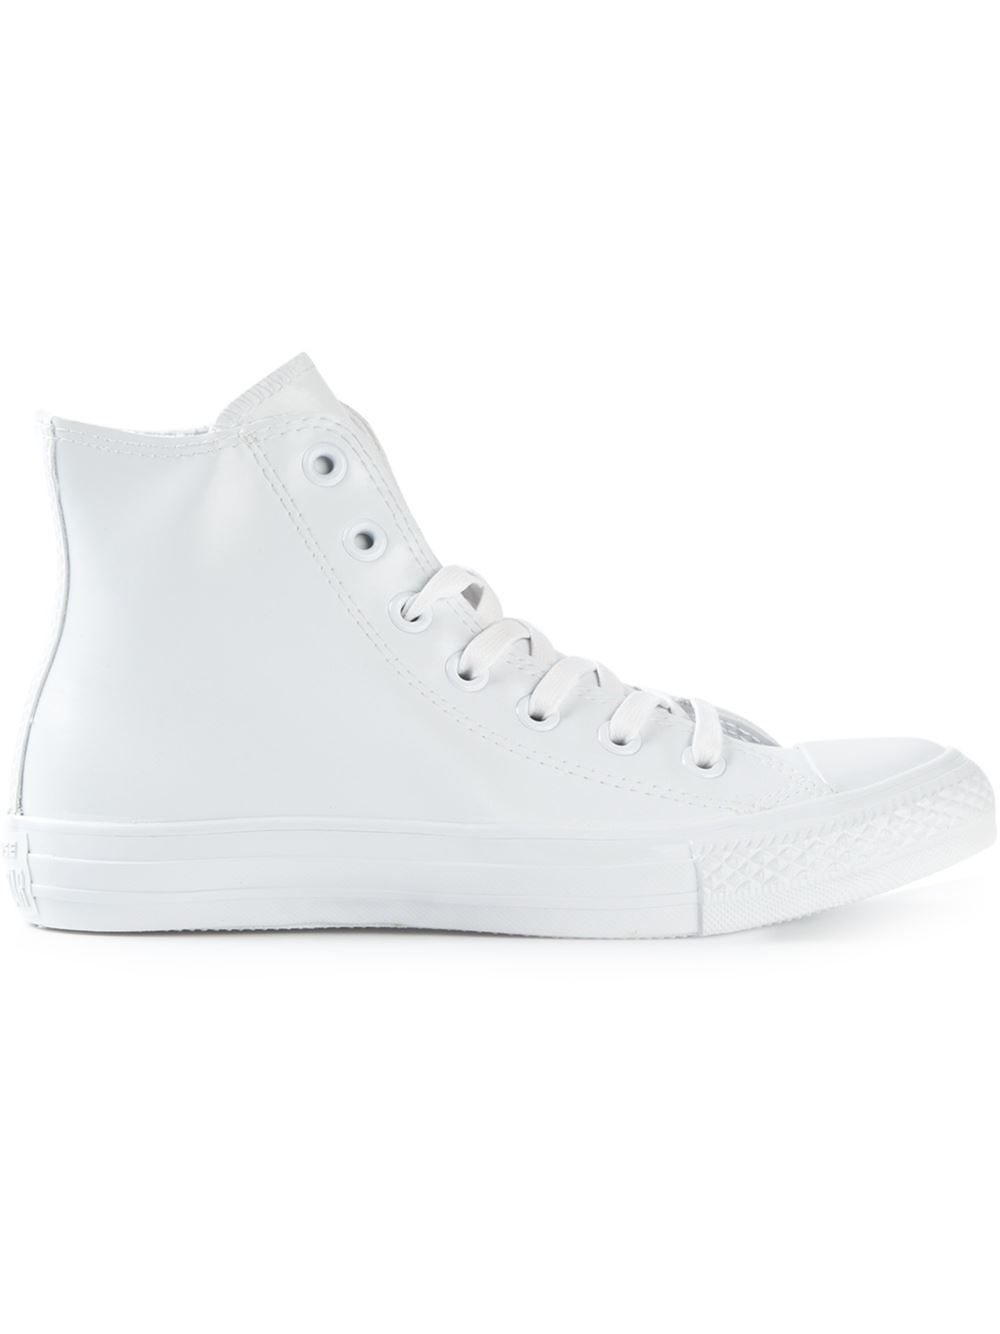 Converse High-Top Trainers in White | Lyst